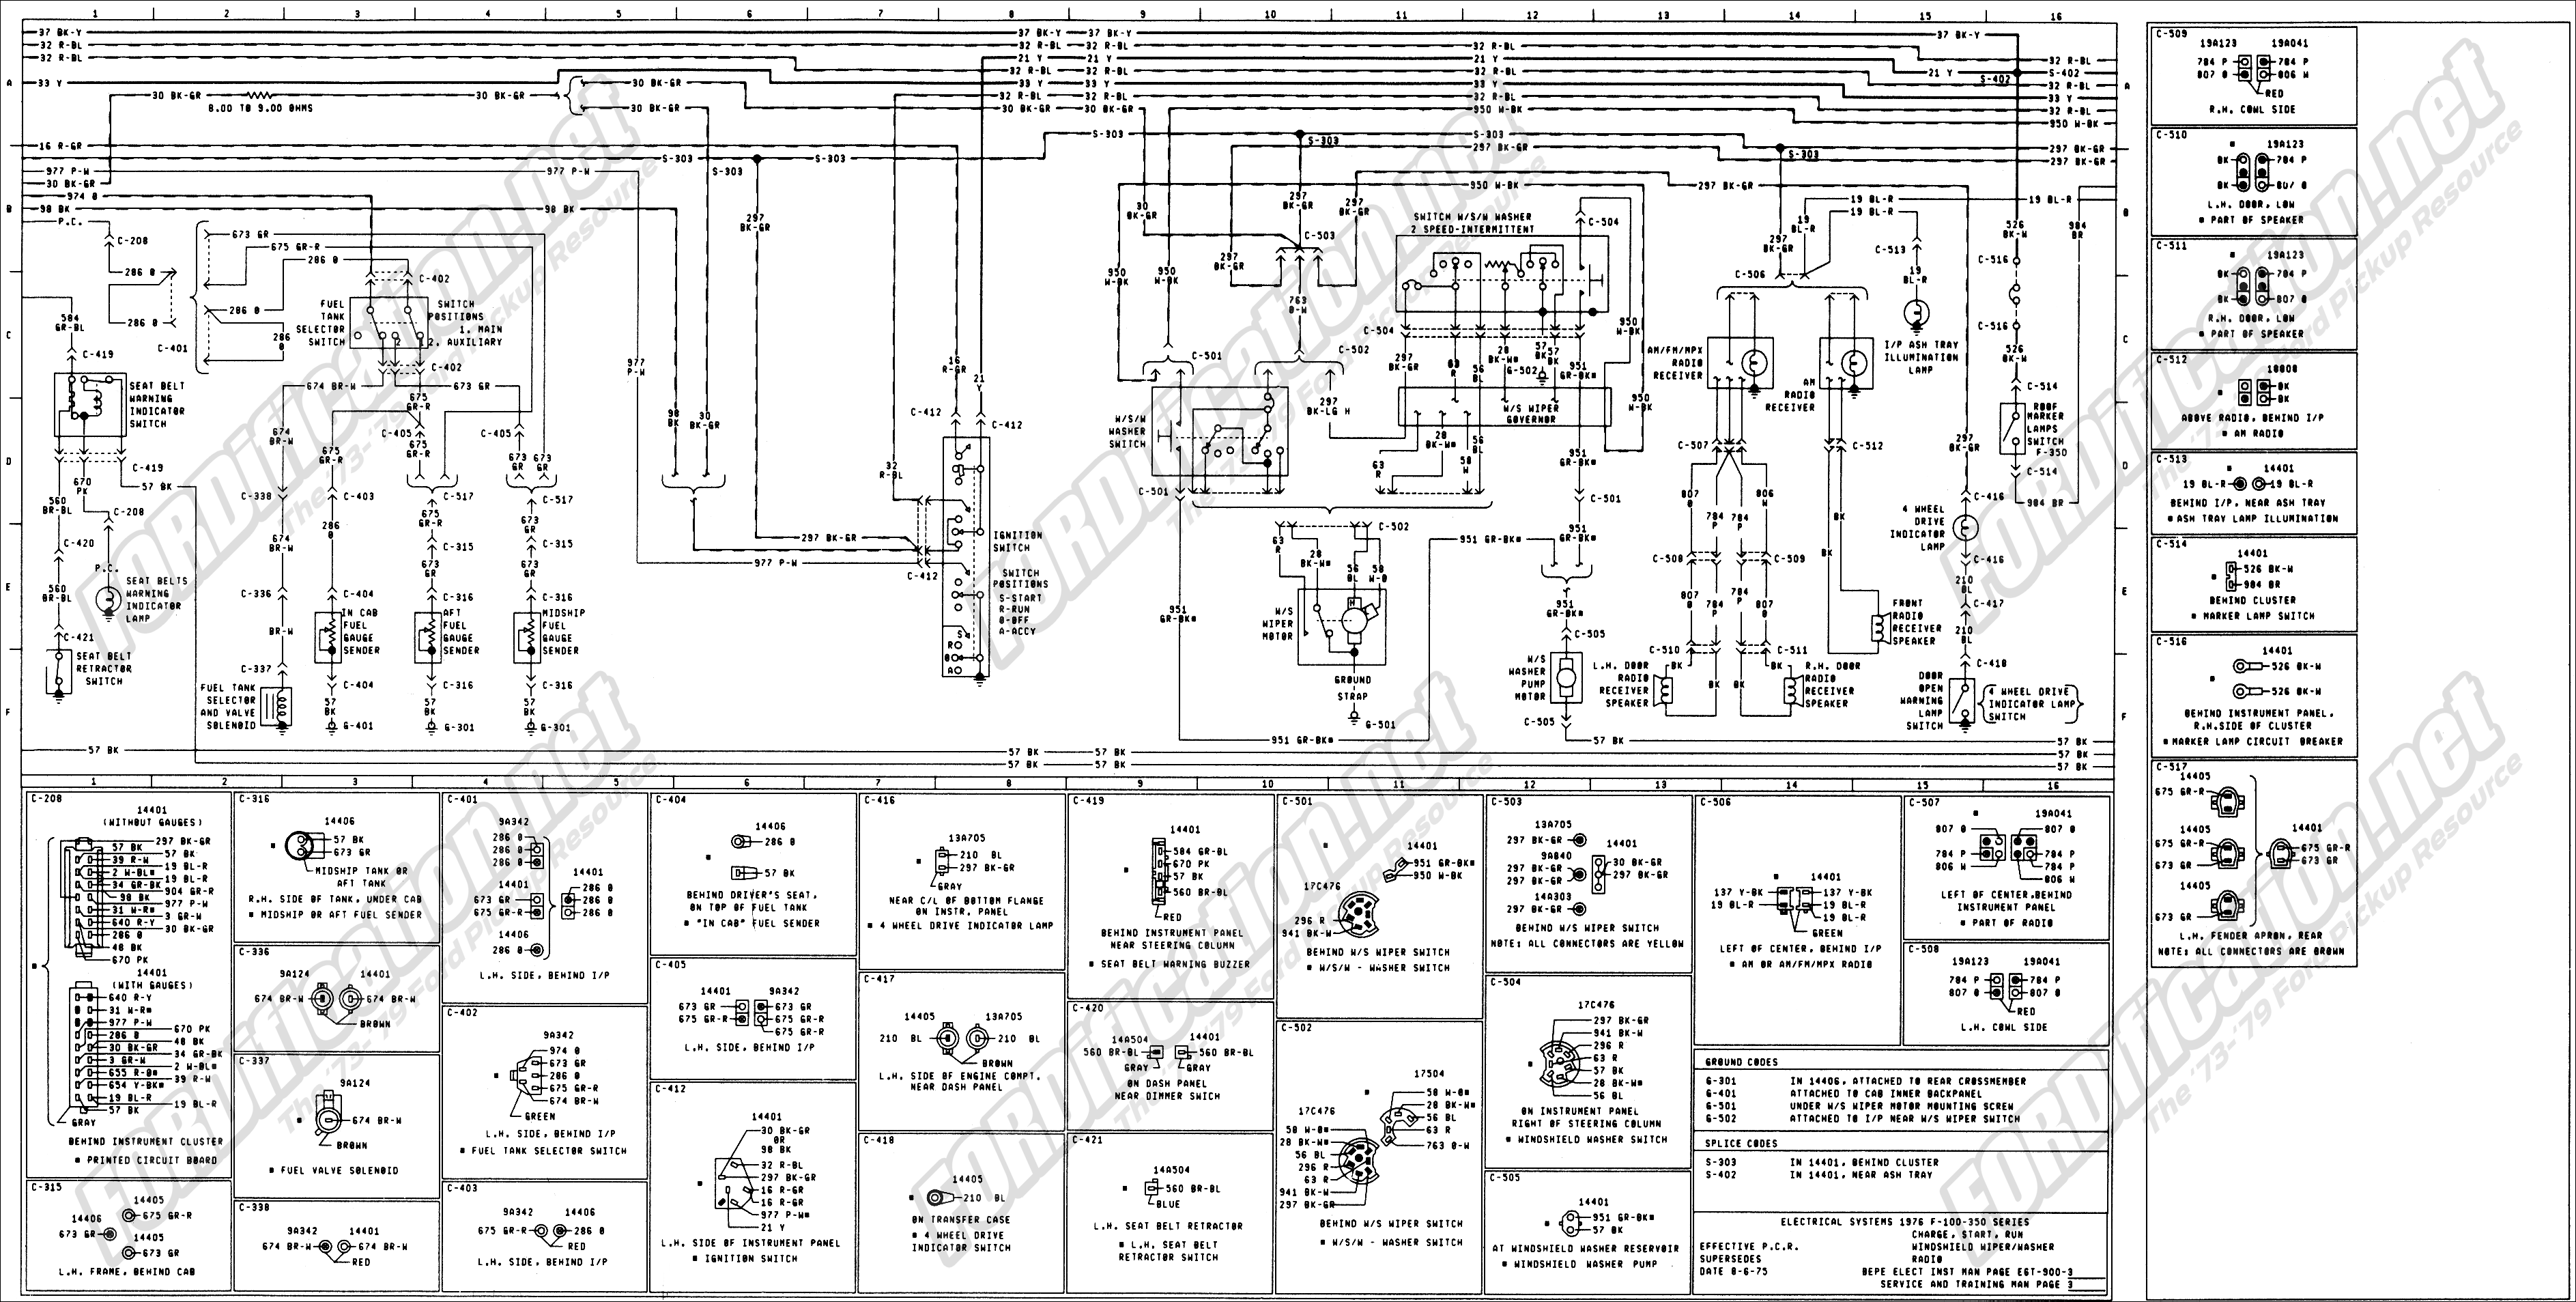 2001 f150 headlight wiring diagram auto electrical wiring diagram rh  harvard edu co uk iico me